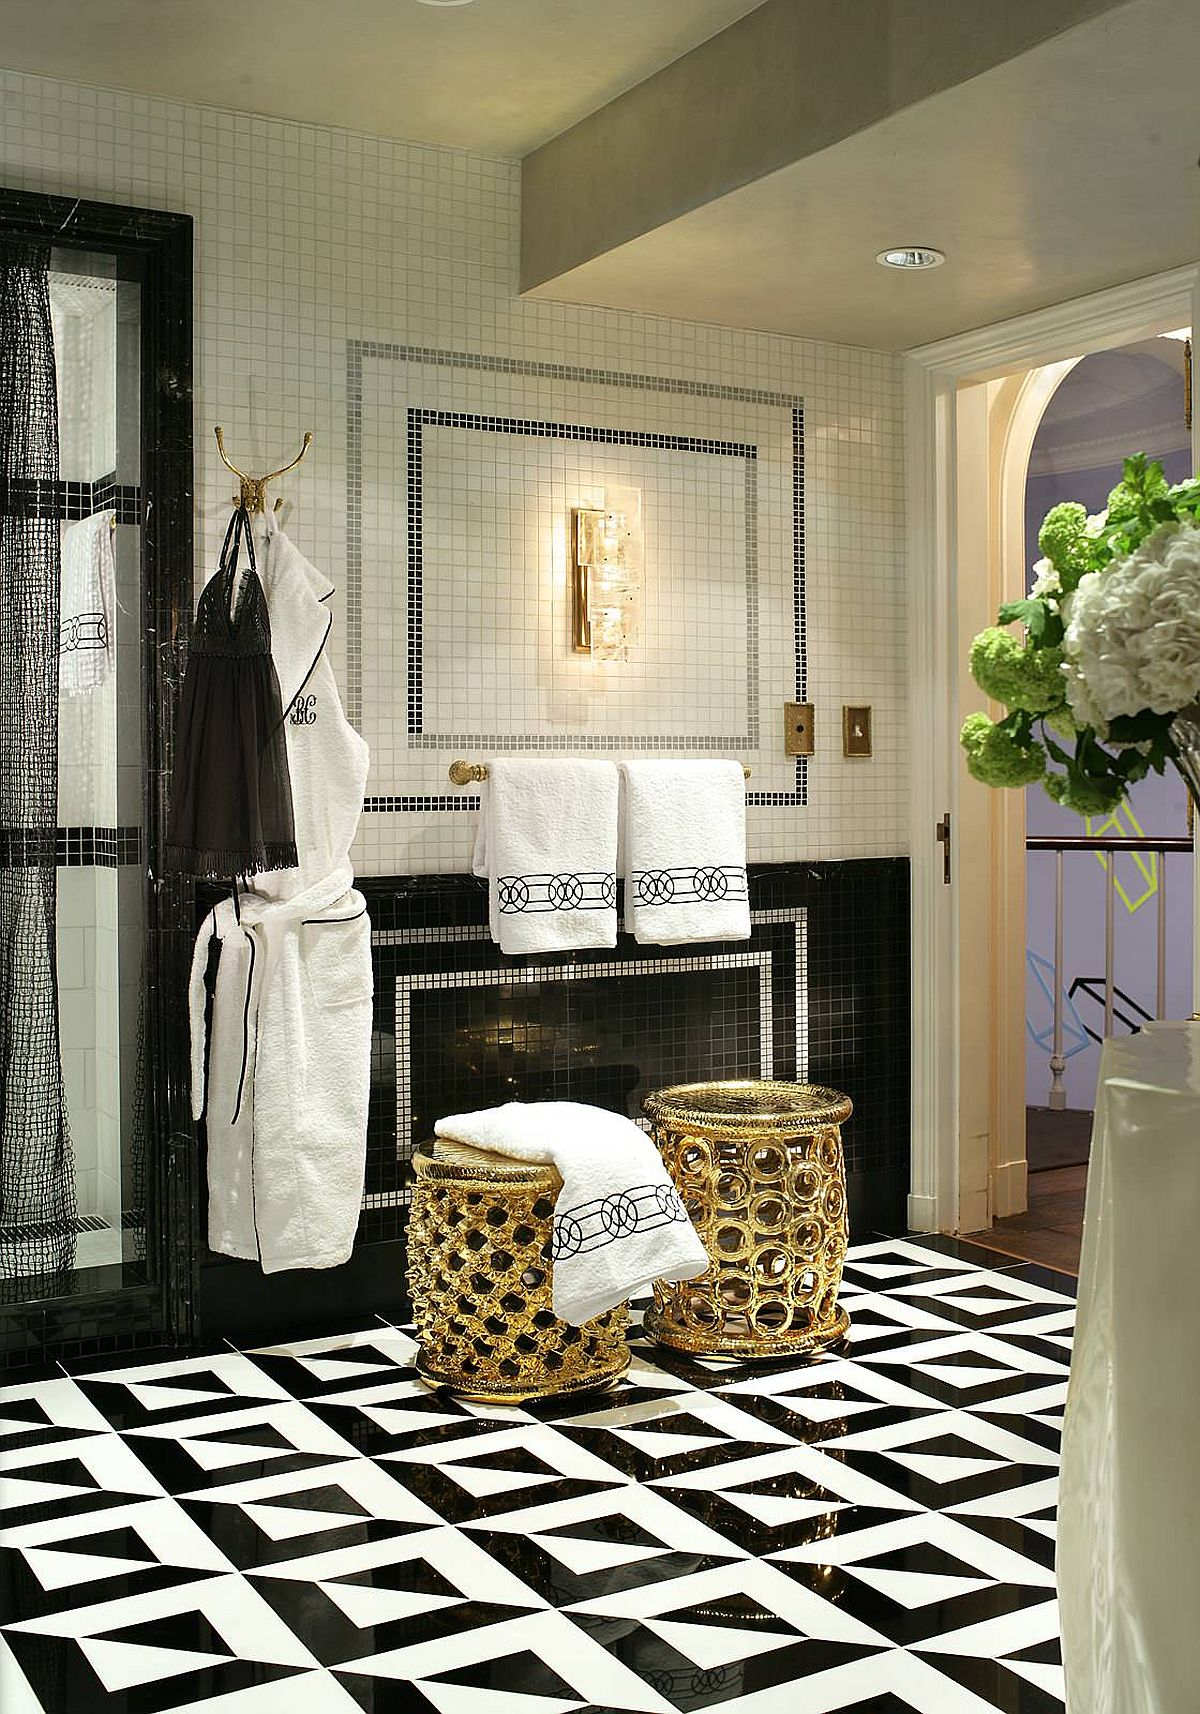 Replace old bathroom towels, toiletries and stools with more upscale stuff during staycation!